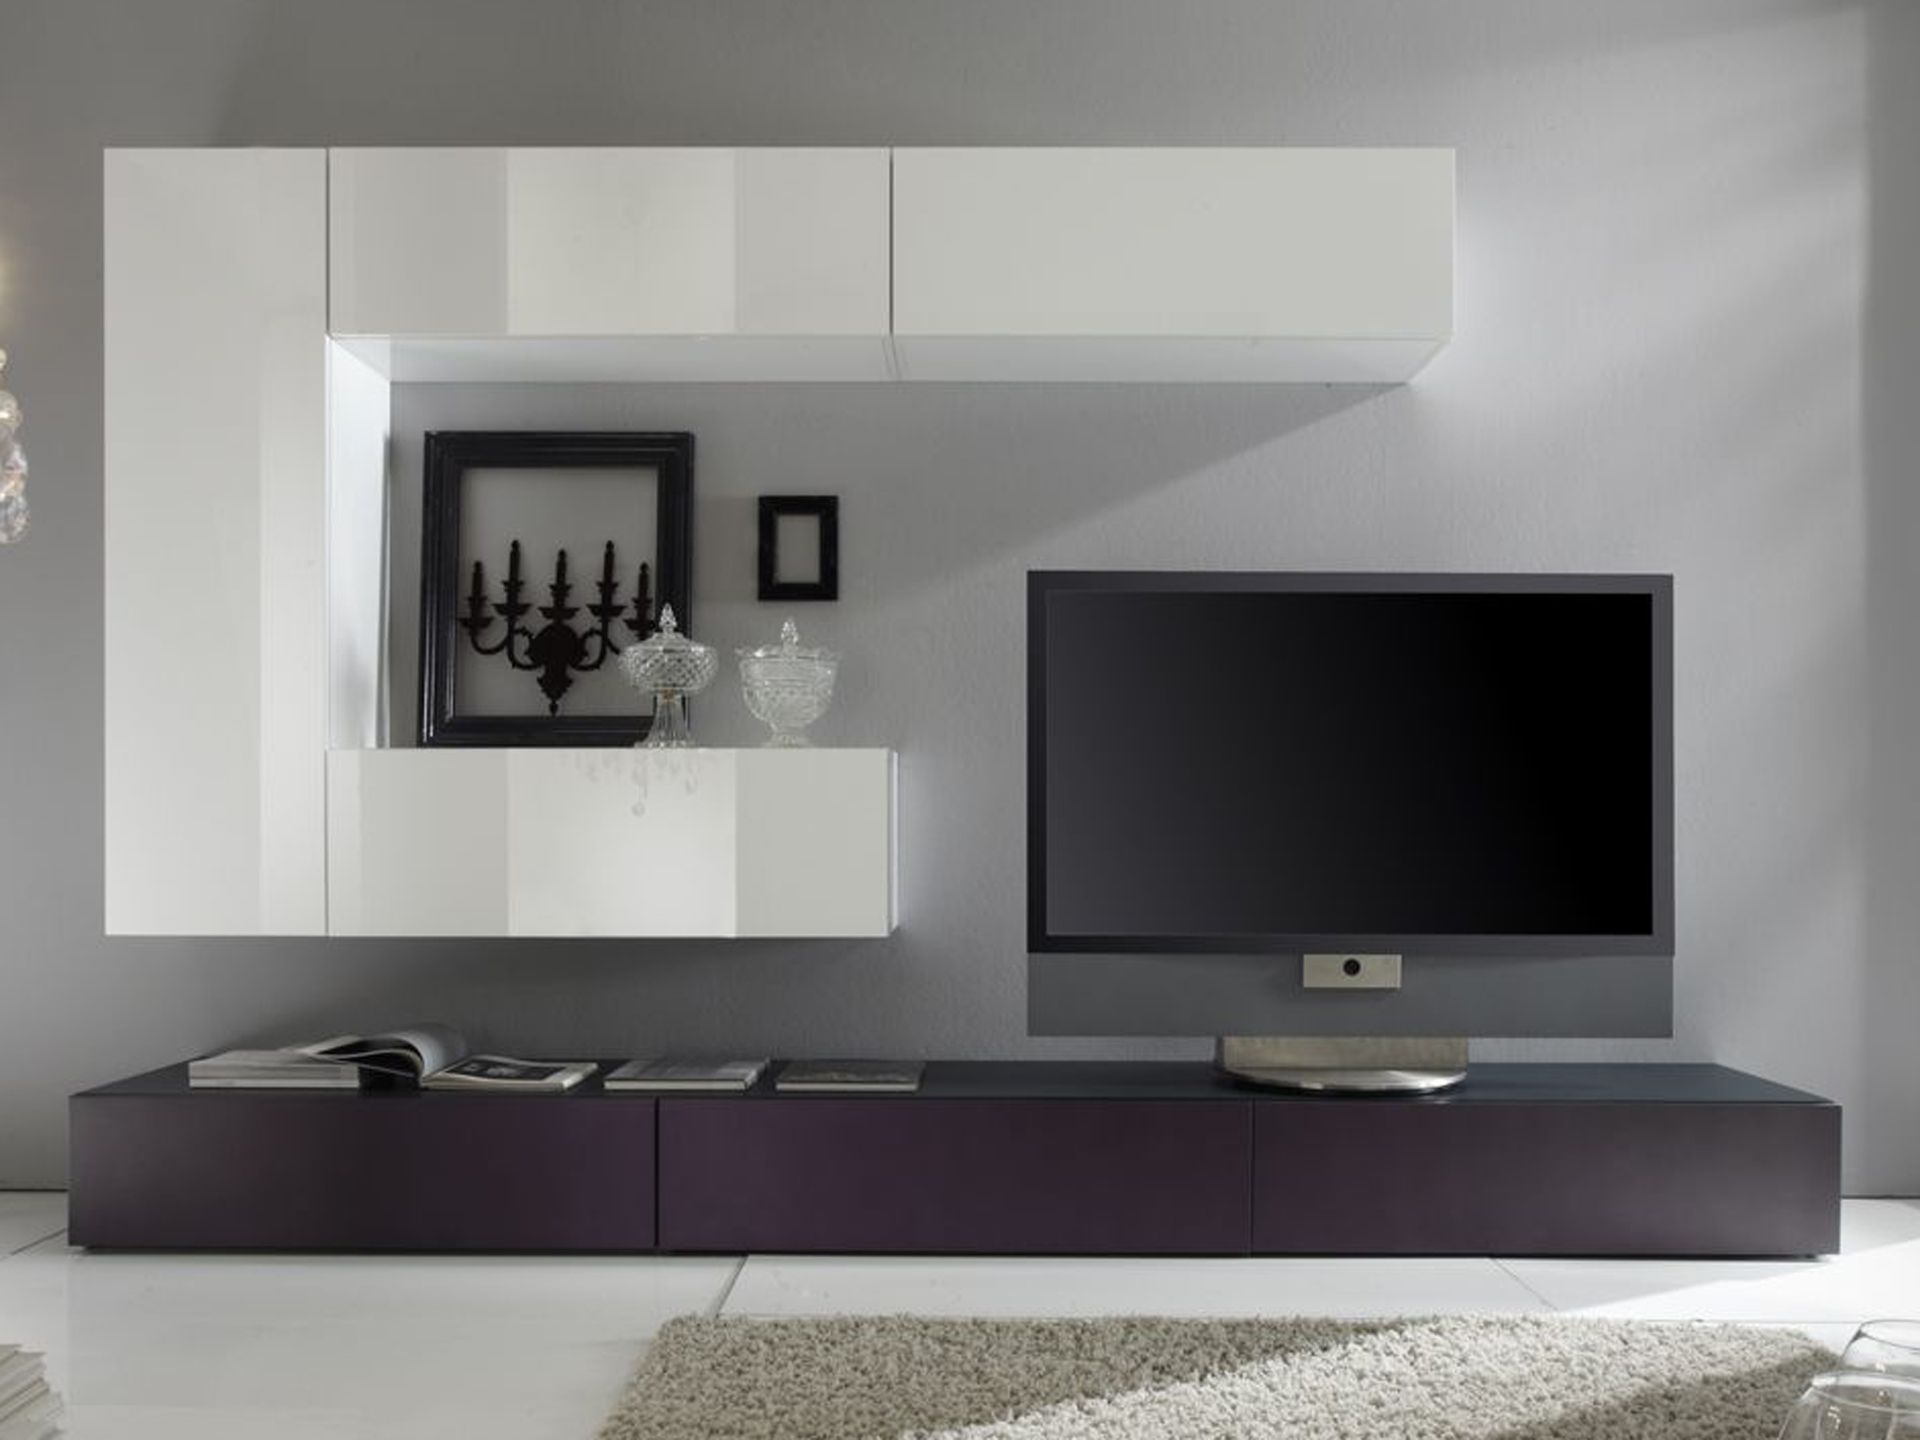 Meuble Tv Ikea Recherche Google Tv Pinterest Tv Unit And Flats # Meuble Tv Arena